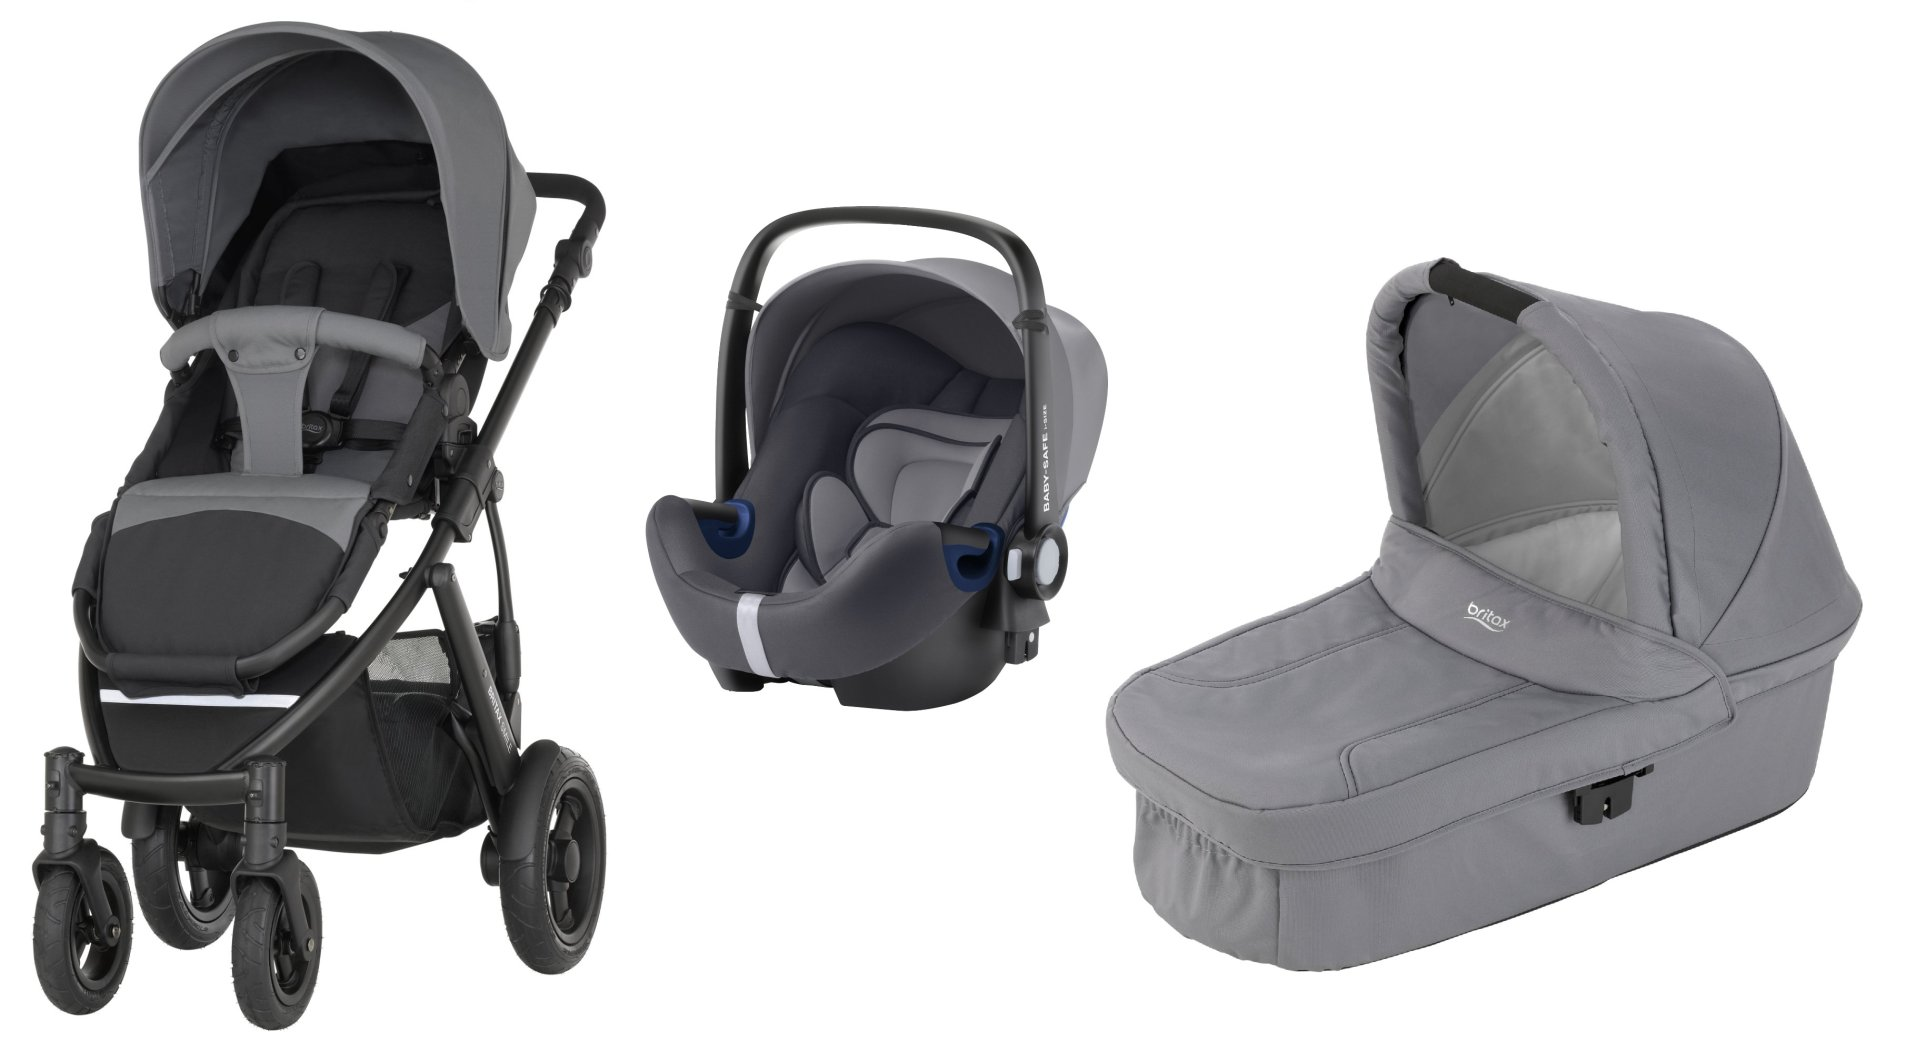 britax r mer smile 2 inkl hard carrycot babyschale baby safe plus shr ii 2018 steel grey. Black Bedroom Furniture Sets. Home Design Ideas